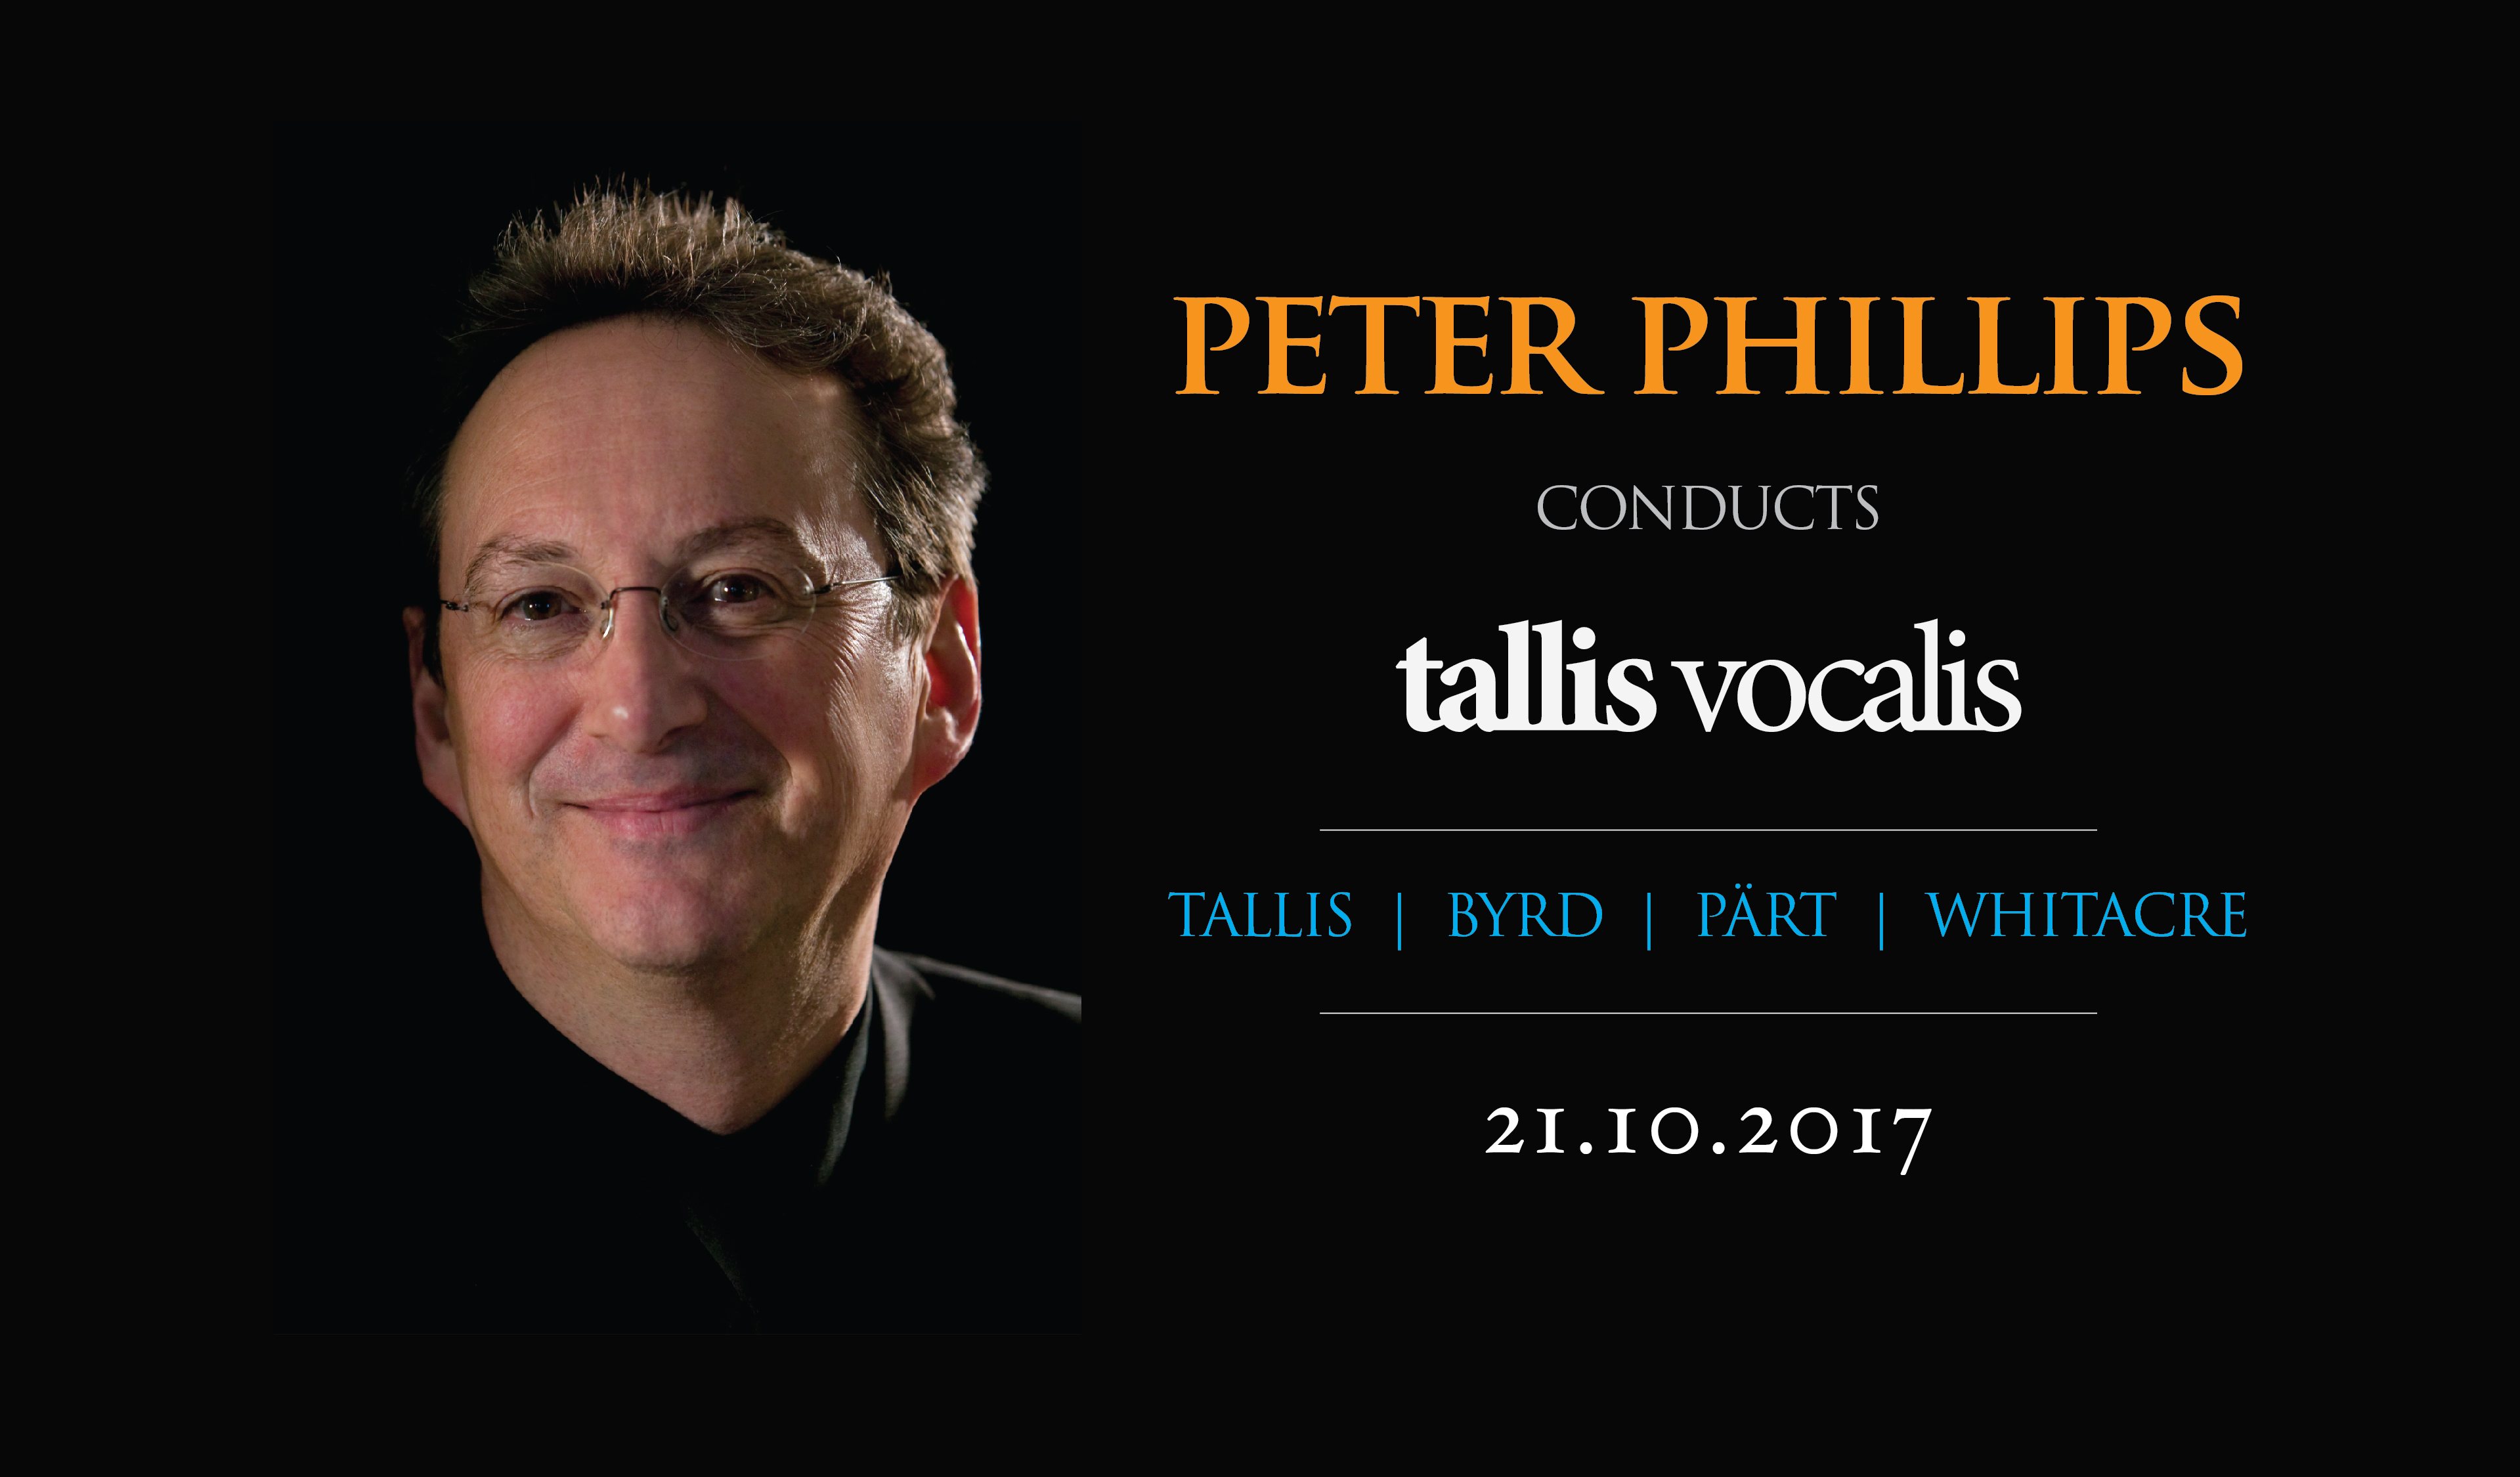 Peter Phillips conducts Tallis Vocalis